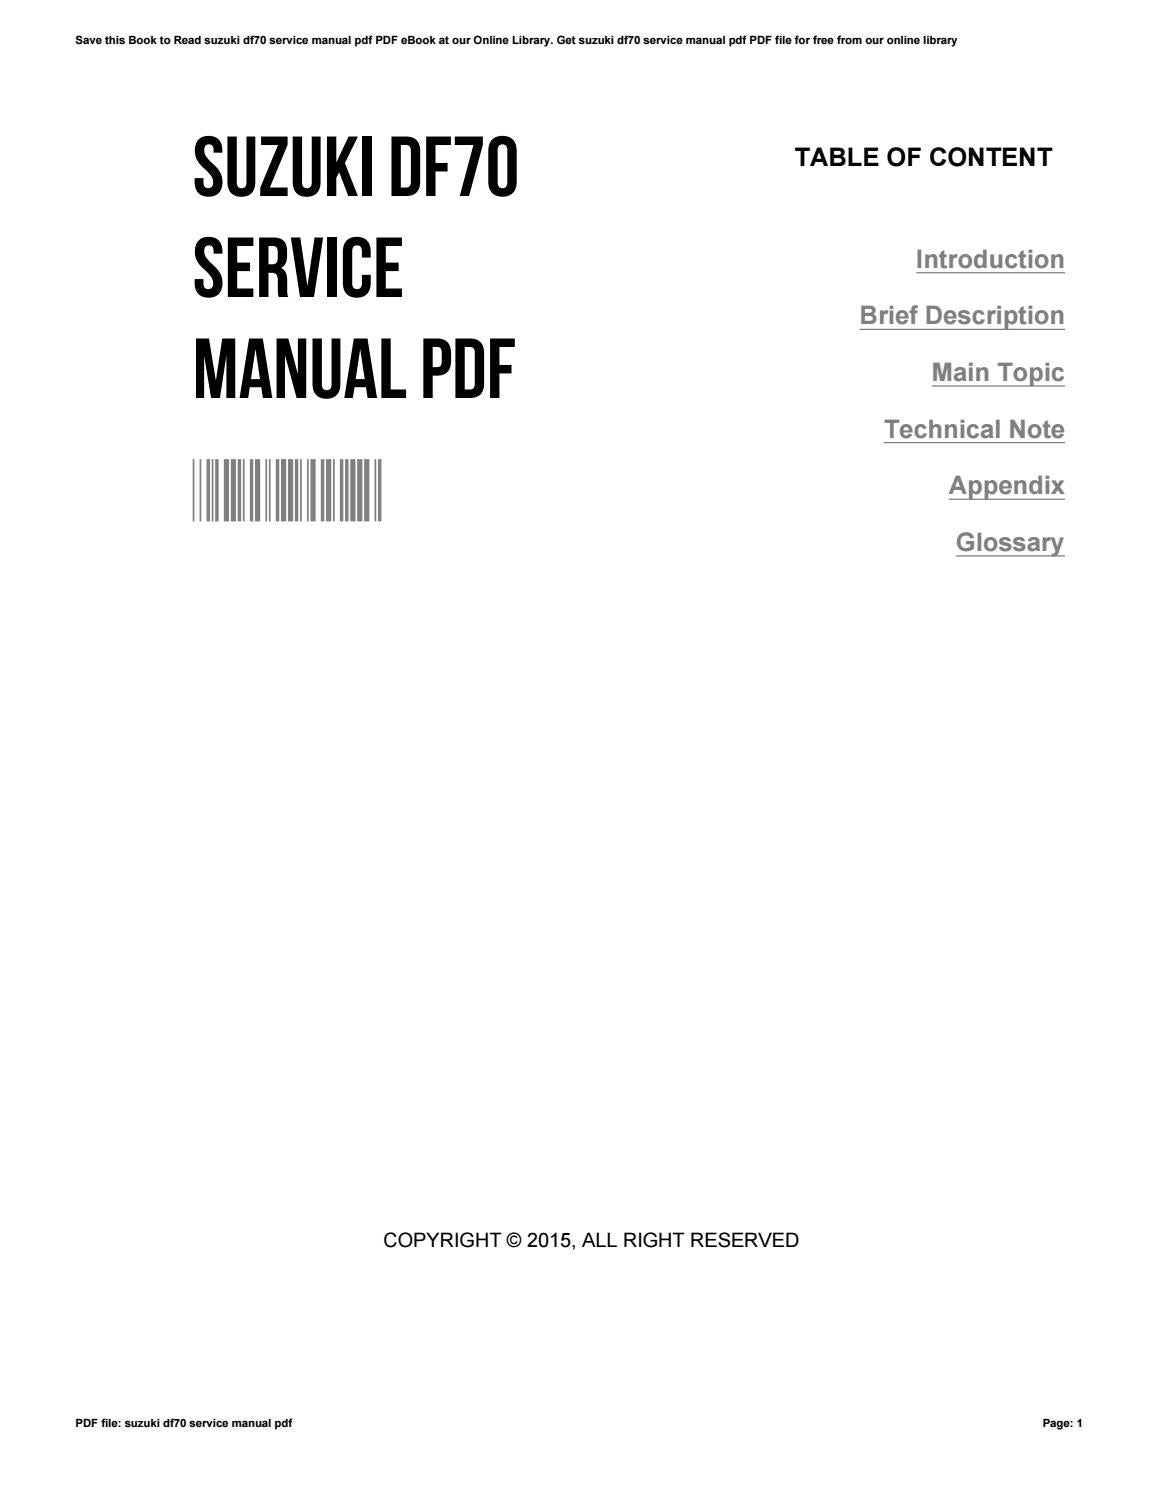 Regent 1911 service manual ebook array suzuki df 60 manual ebook rh suzuki df 60 manual ebook argodata us fandeluxe